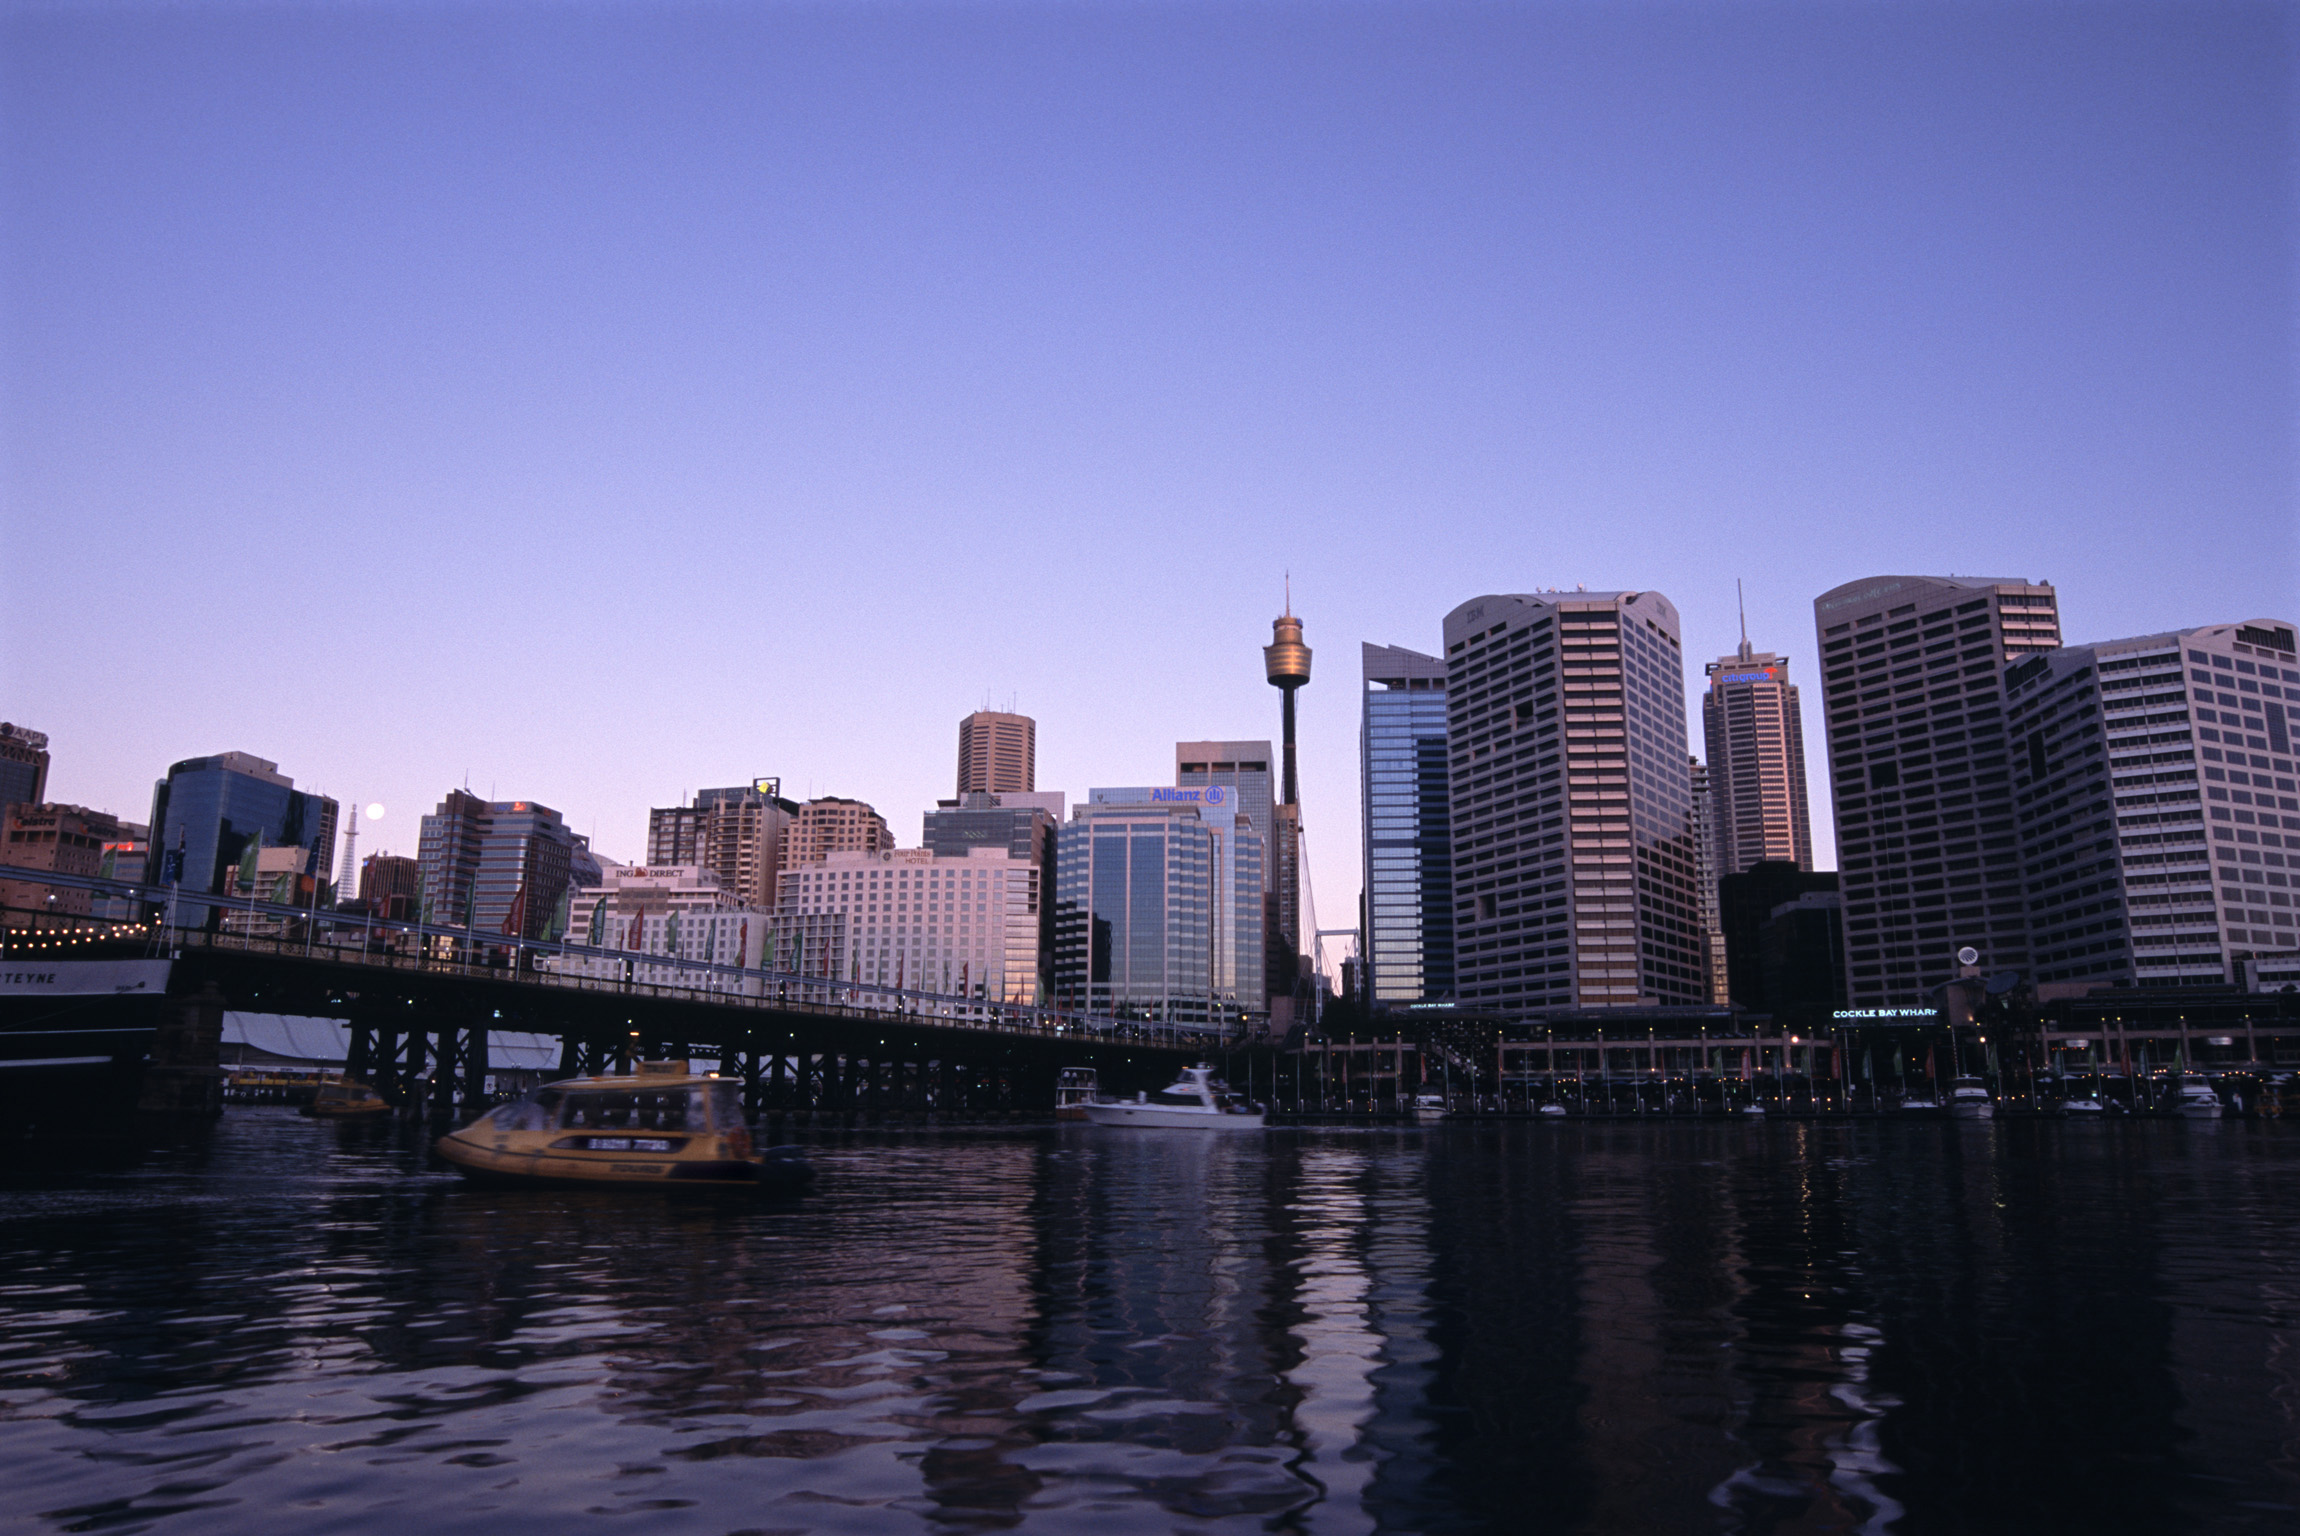 Beautiful Australian Cityscape - Darling Harbour Looking Towards the East. Captured with Architectural Buildings, Bridge and Boats on Gradient Blue Sky Background.